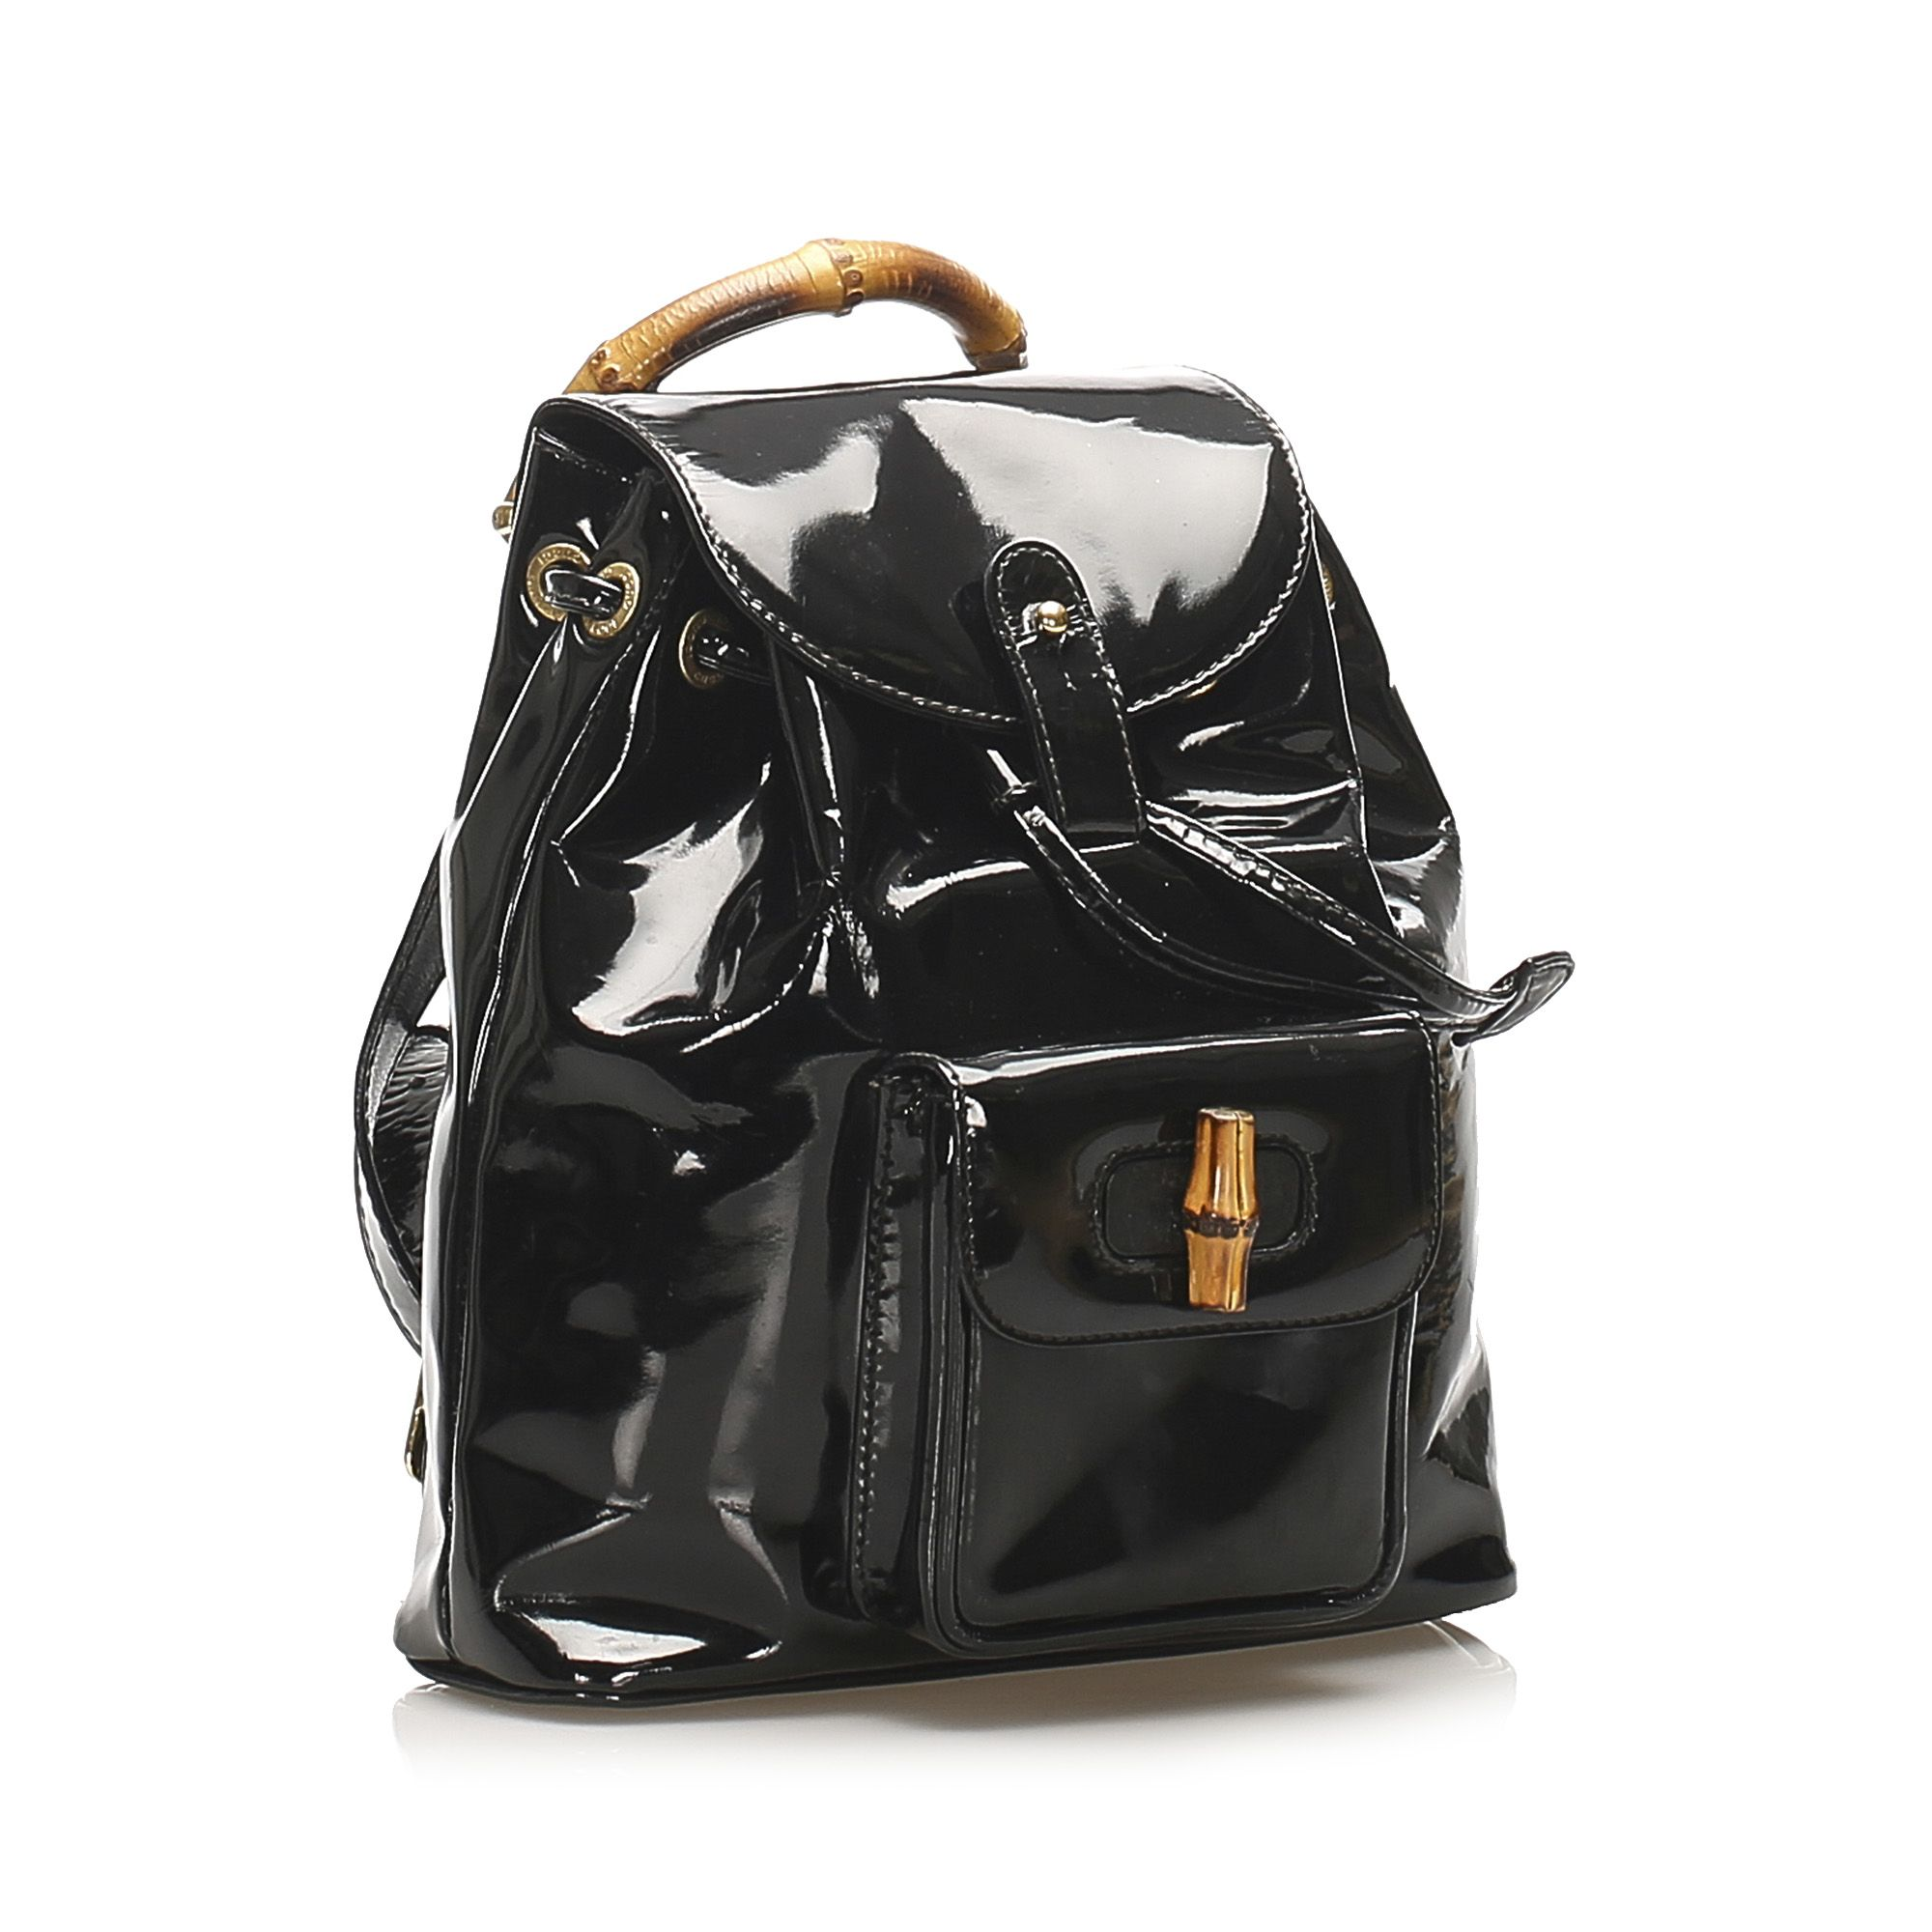 Vintage Gucci Bamboo Patent Leather Drawstring Backpack Black